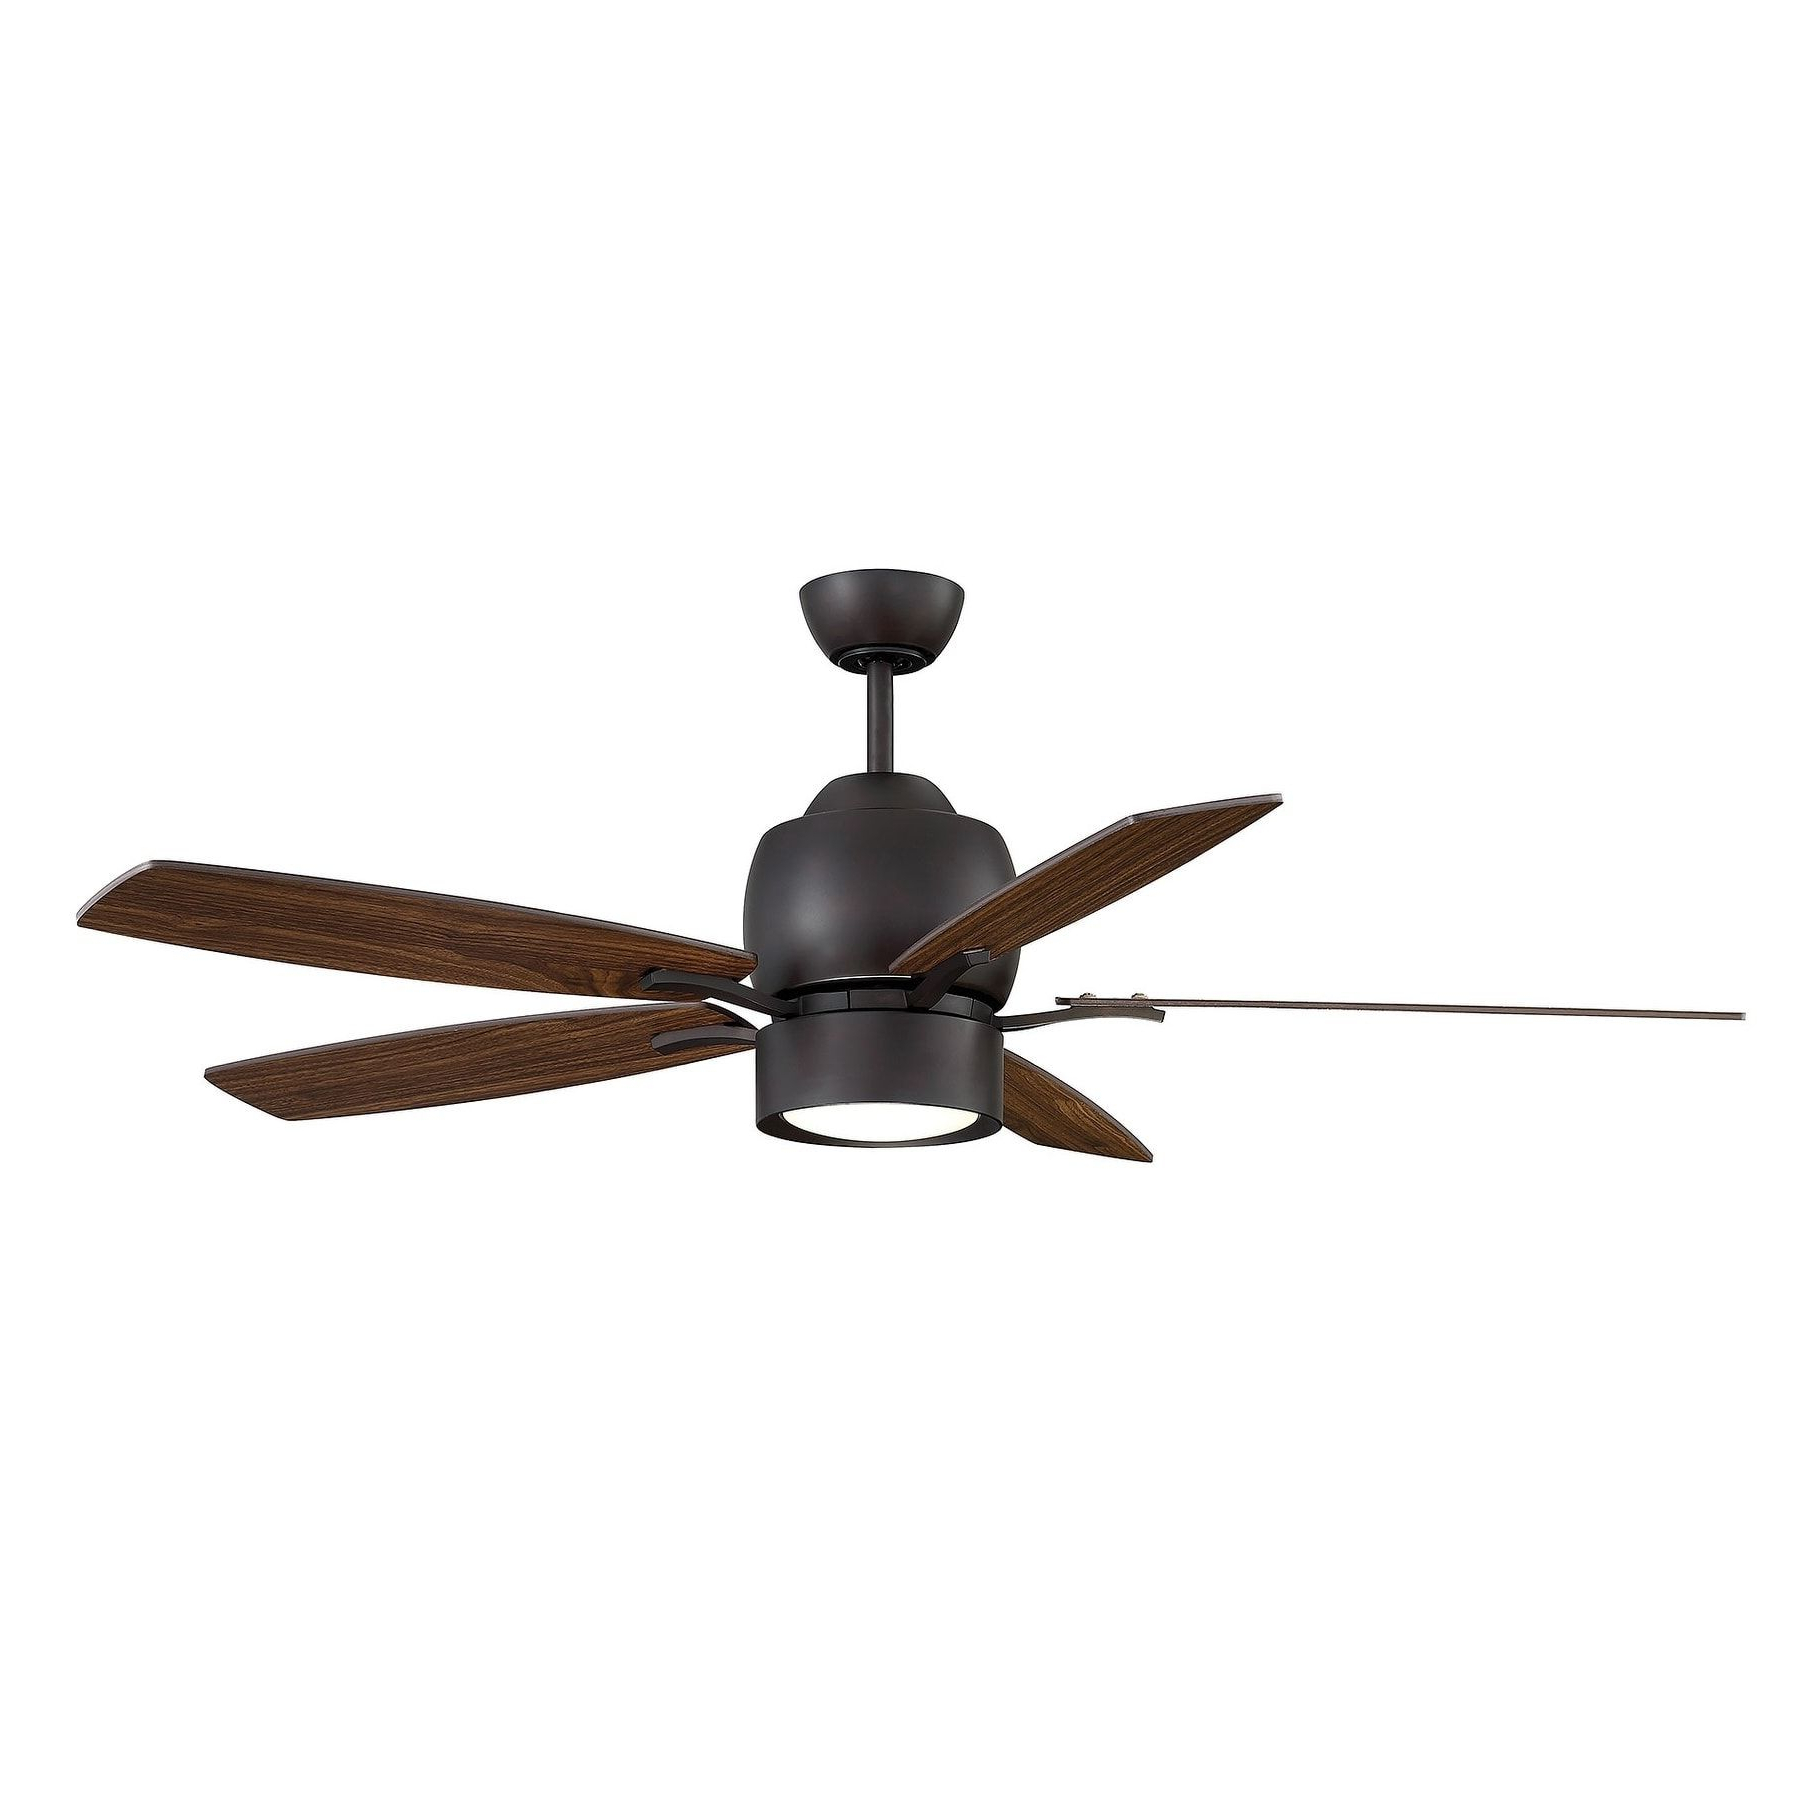 Popular Savoy House Girard Bronze Finished Metal (grey) 52 Inch 5 In Clybourn 5 Blade Ceiling Fans (View 6 of 20)